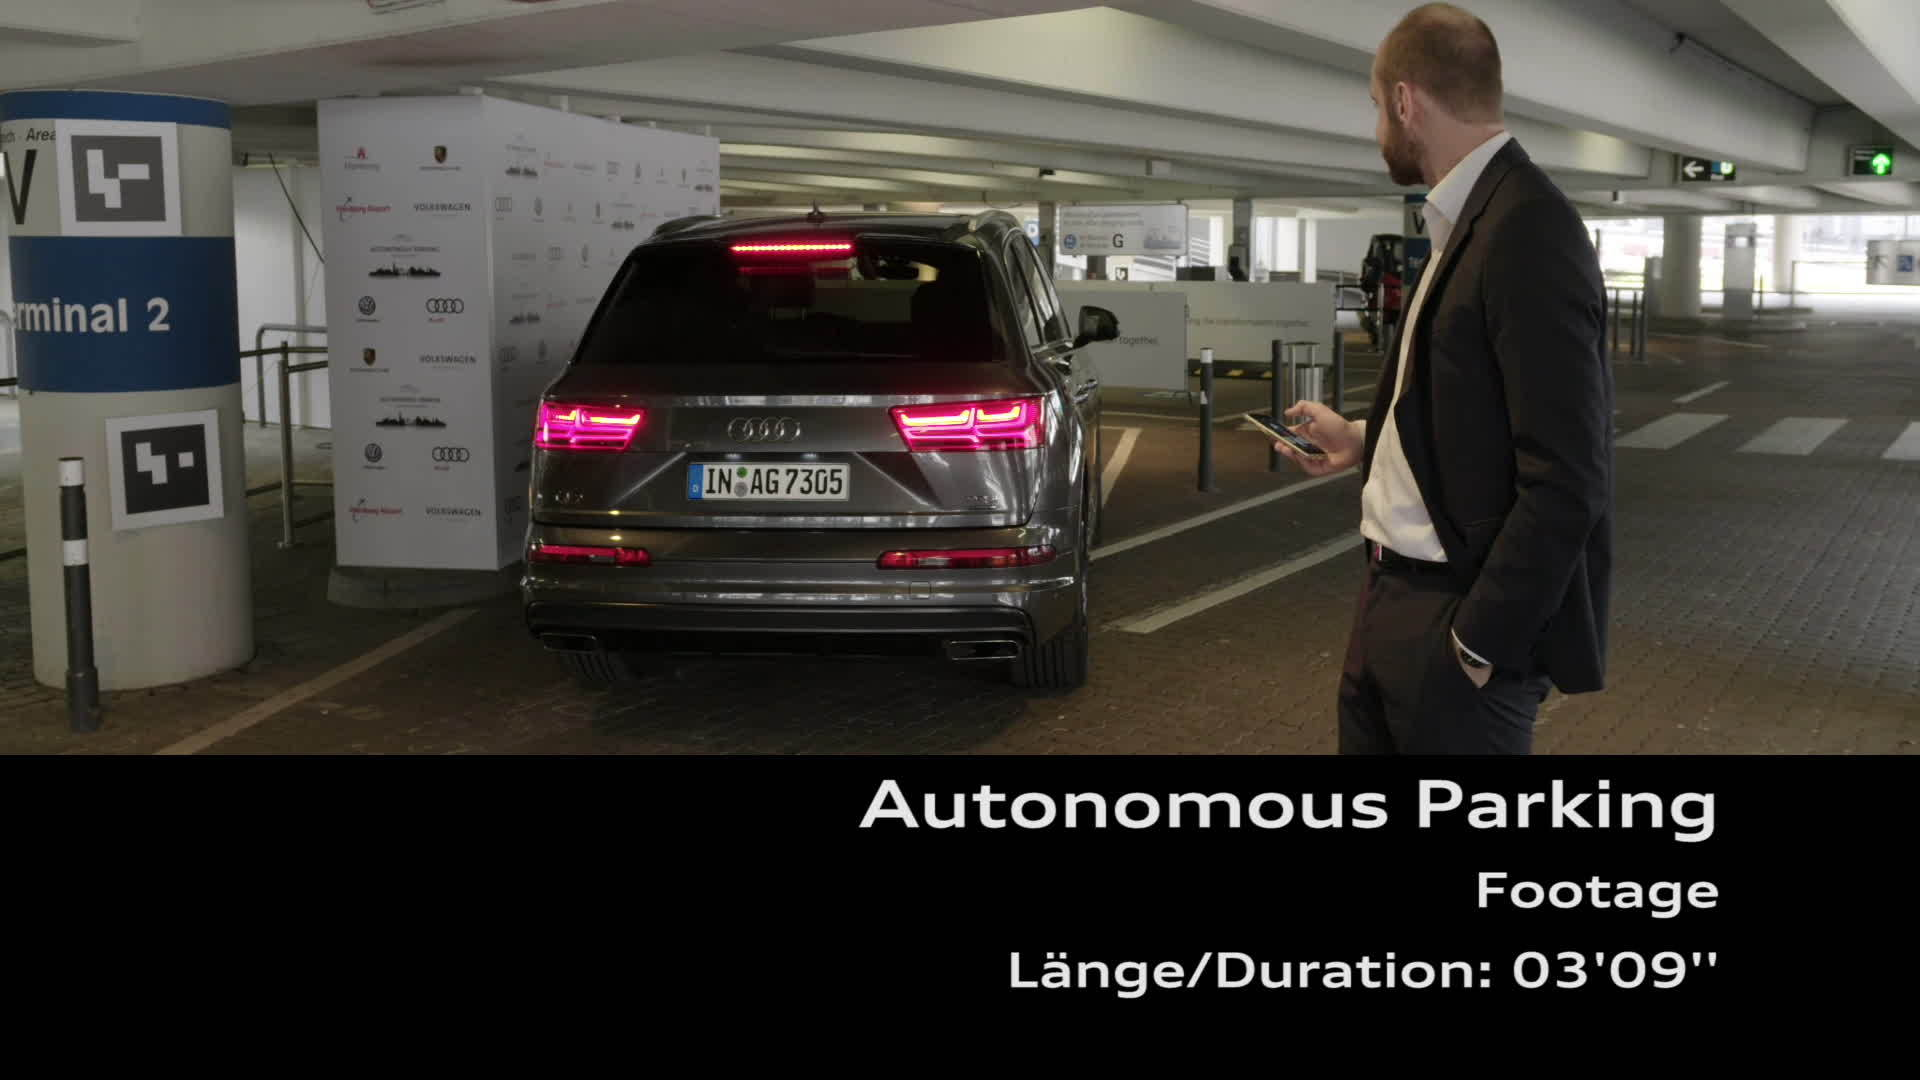 Footage Autonomes Parken am Hamburg Airport